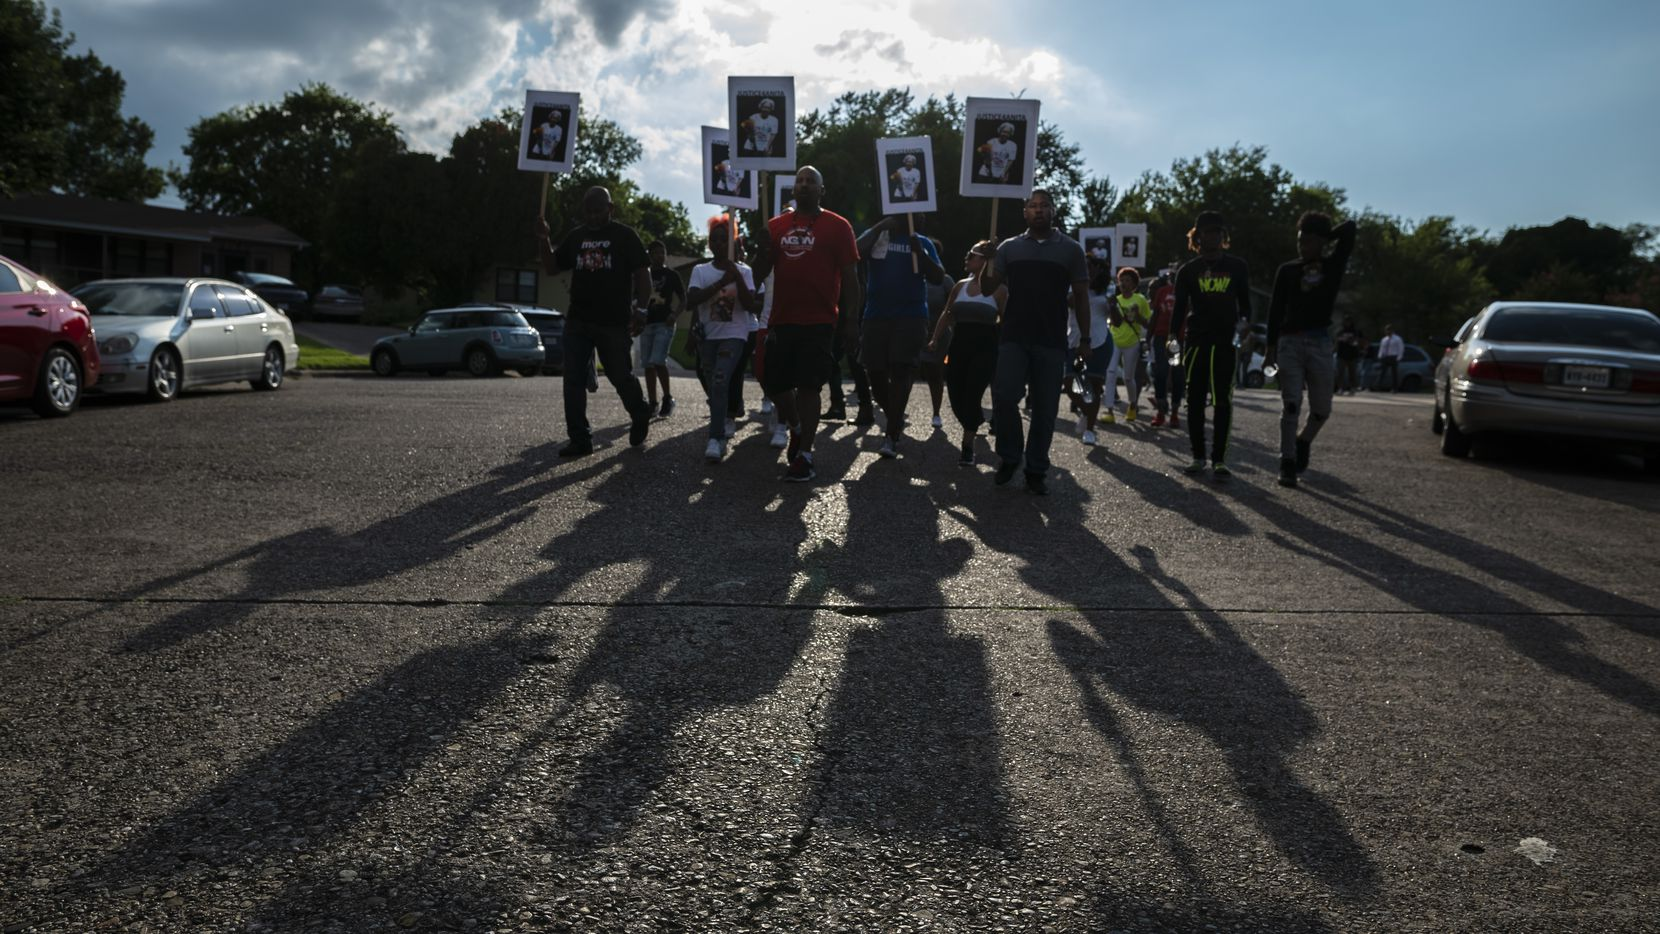 Friends and family march from Anita Thompson's home on Fortune Lane to the Glendale Shopping Center carrying signs with an image of Thompson after the group conducted a prayer vigil outside her home in east Oak Cliff.